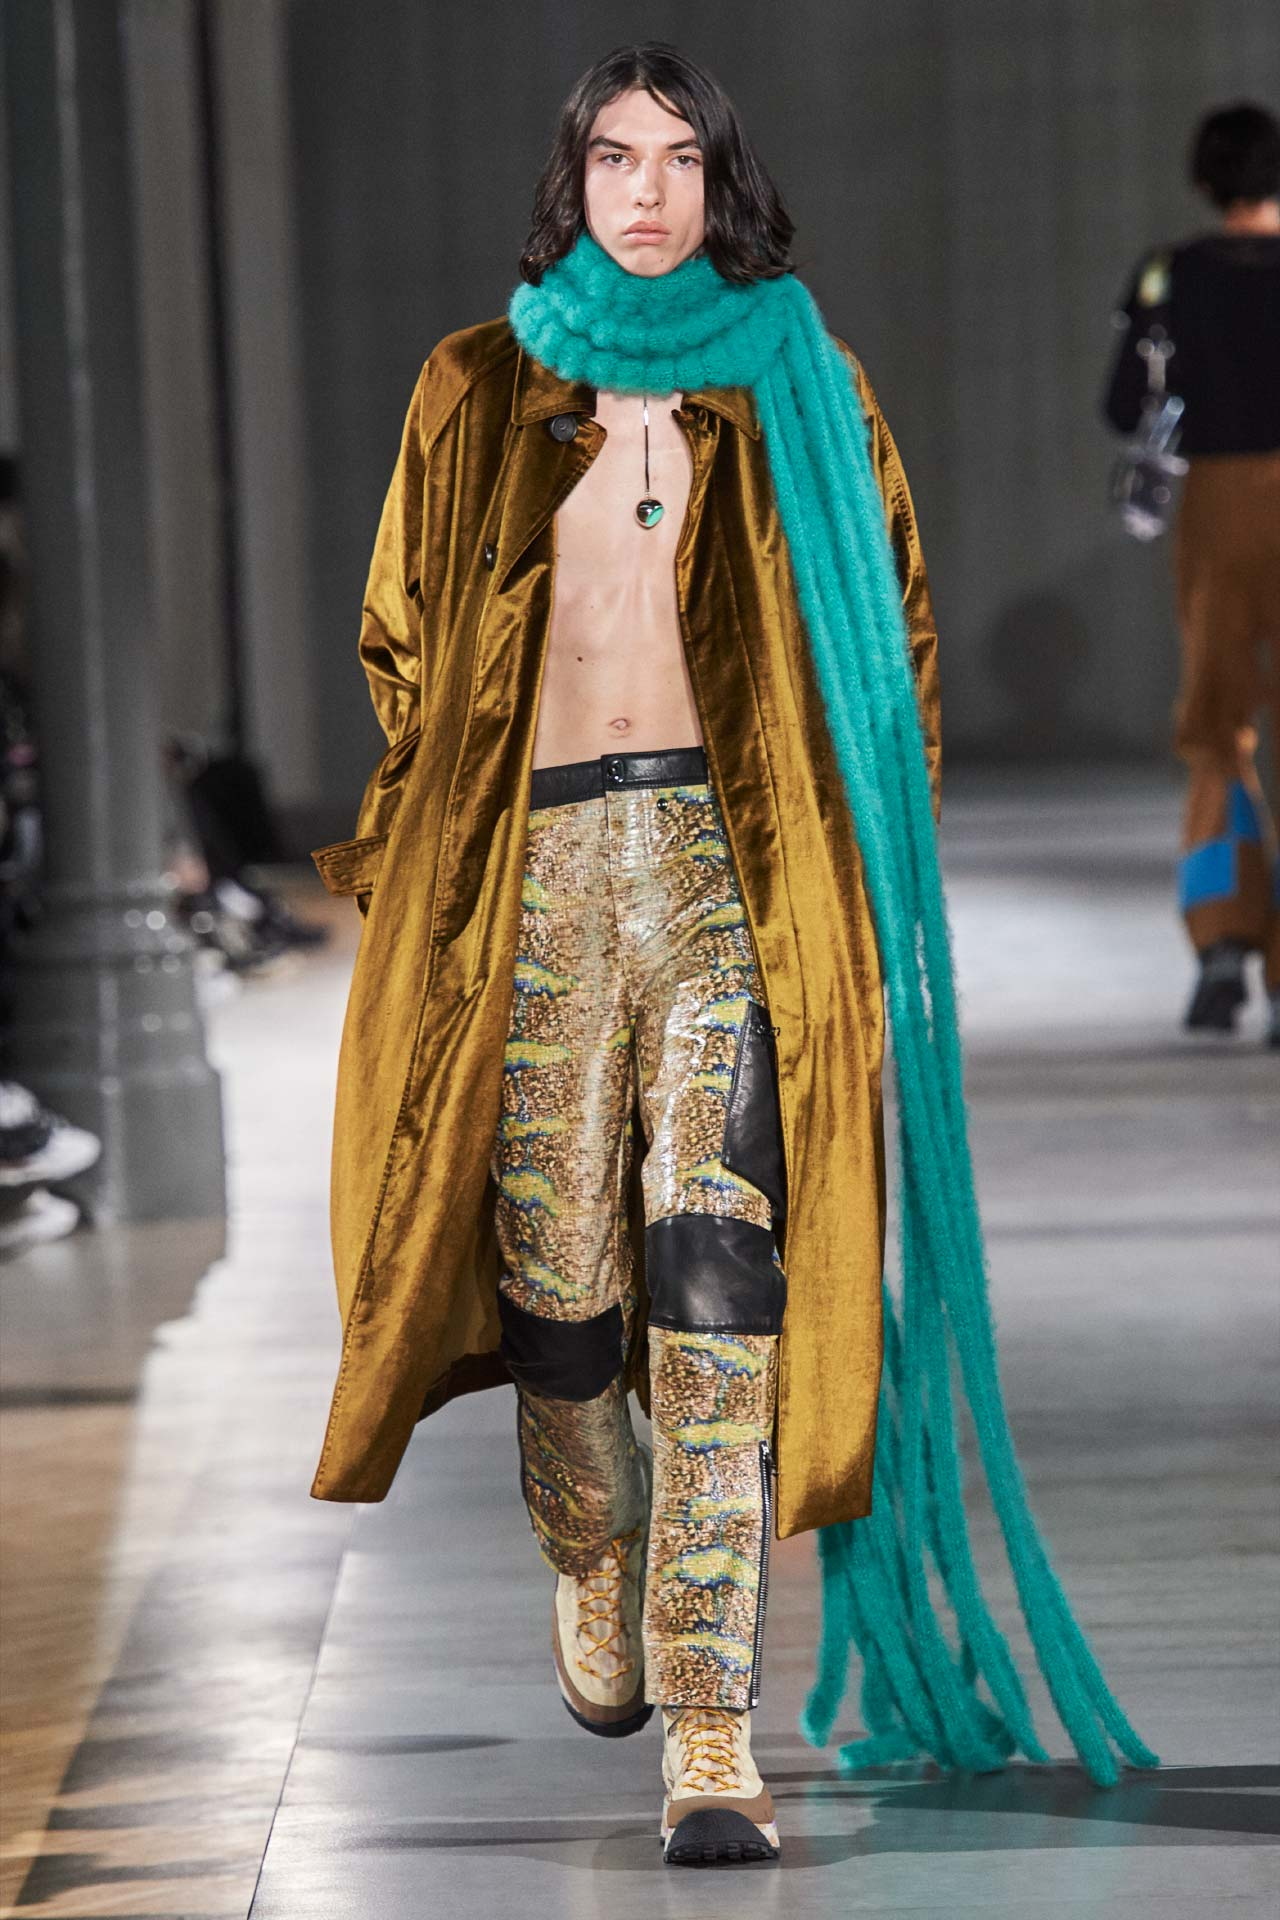 Look Fall/Winter 2019, image 28